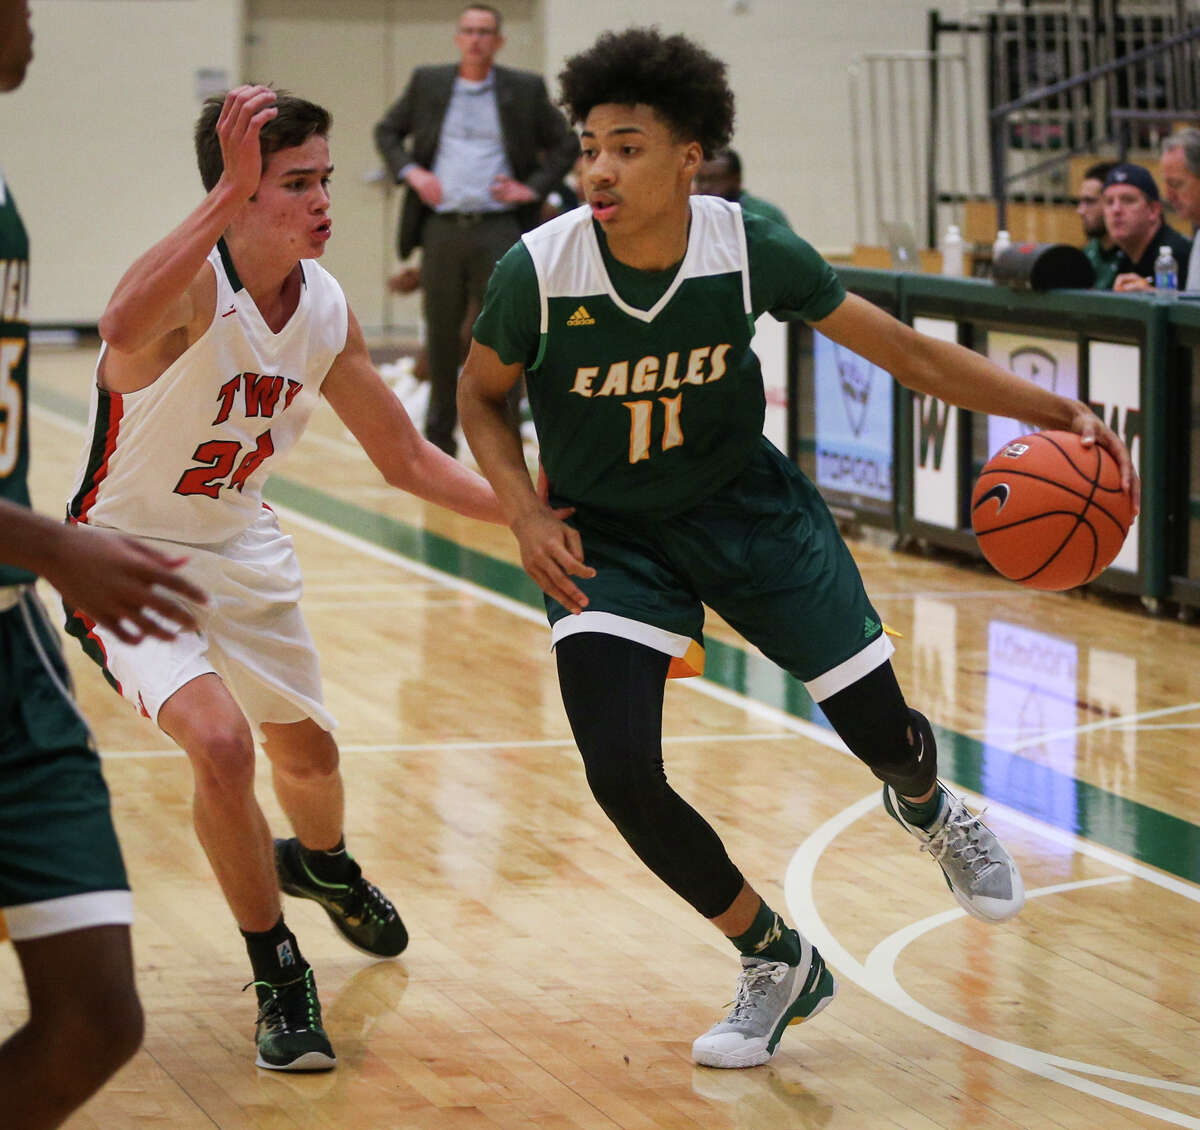 Klein Forest's Durey Cadwell (11) drives for the basket as The Woodlands' Gabe Carbajal (24) defends during the varsity boys basketball game on Saturday, Nov. 26, 2016, at The Woodlands High School. (Michael Minasi / Chronicle)